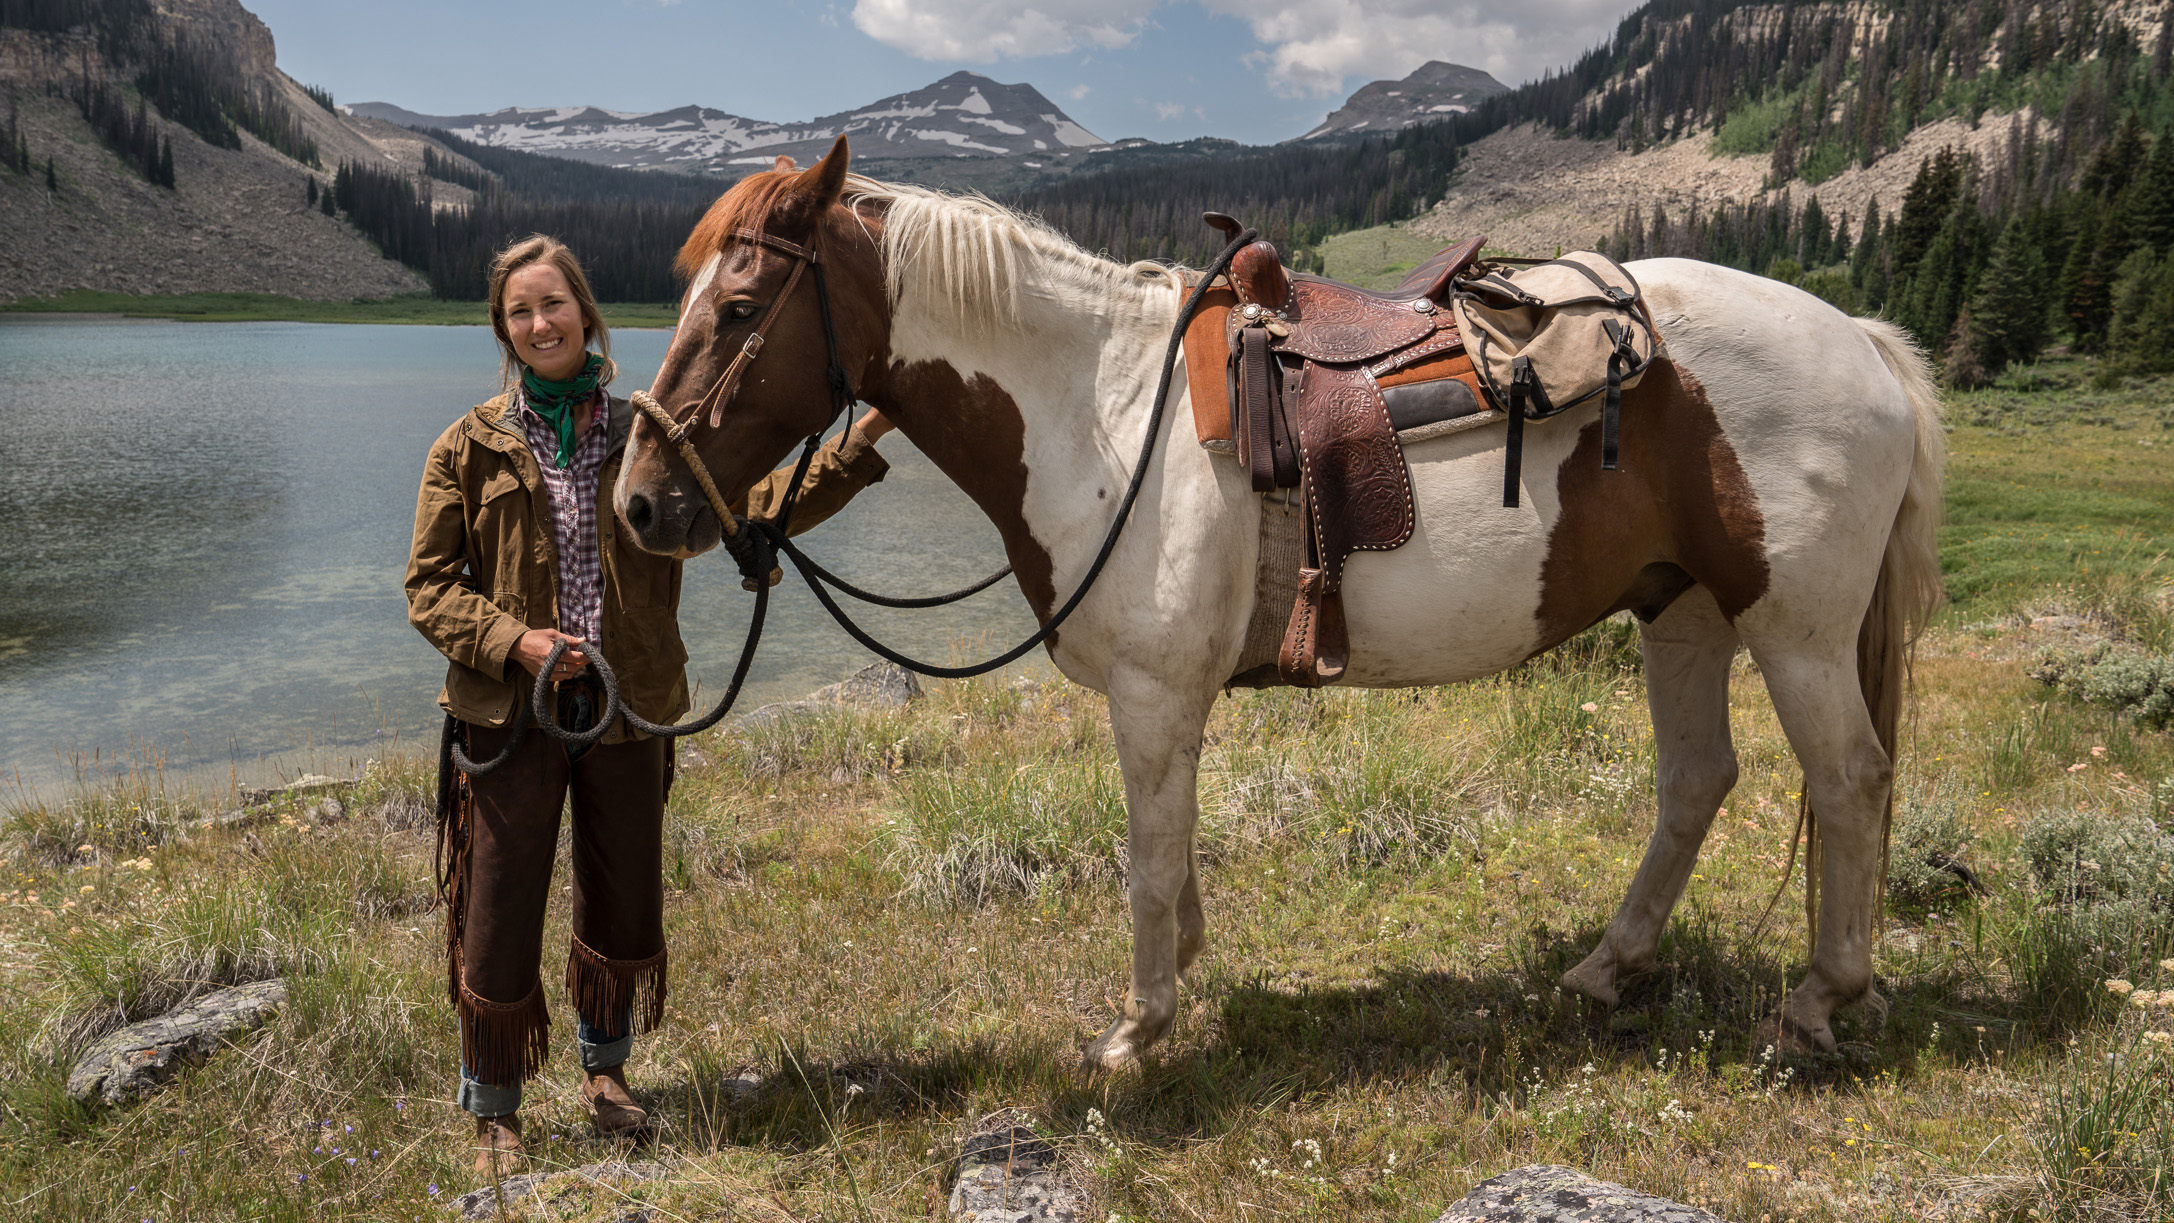 Portrait photograph of Louise Johns standing next to a horse in a mountain landscape with a lake in the background.